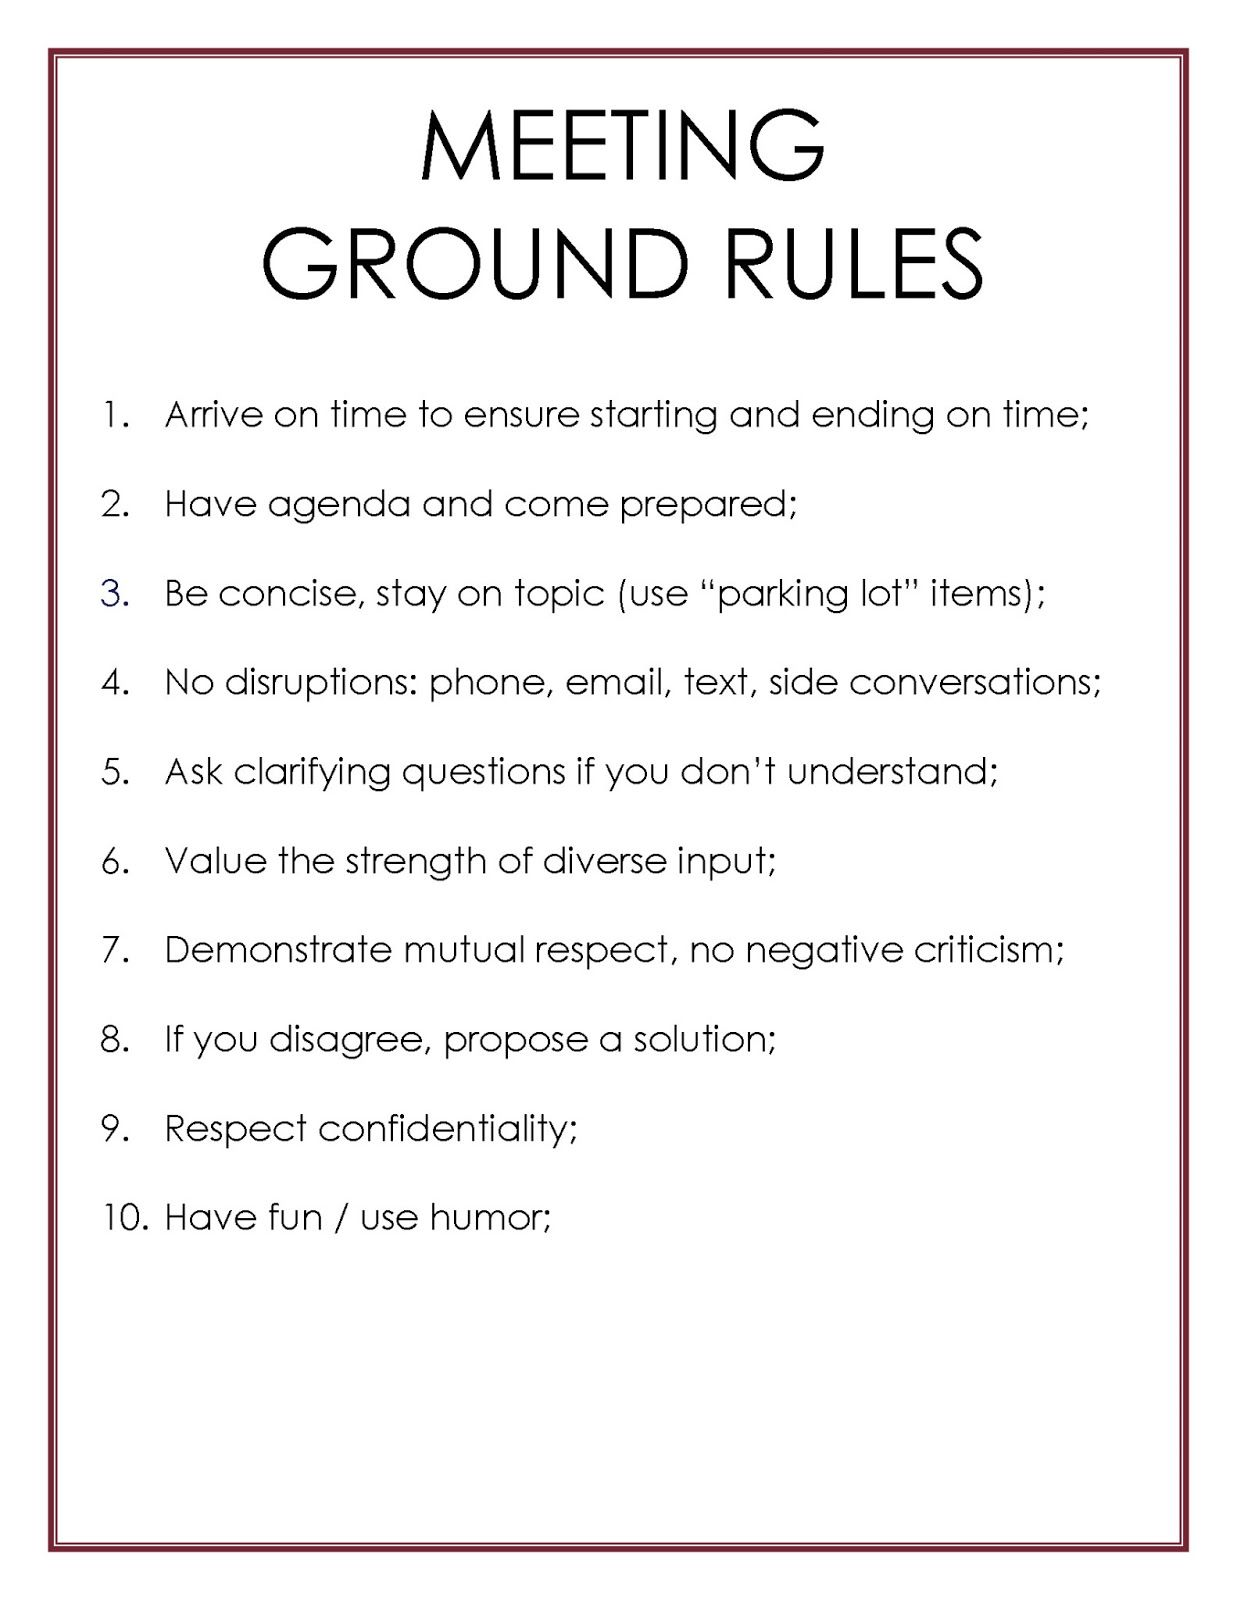 Mycoachken Meetings Ground Rules